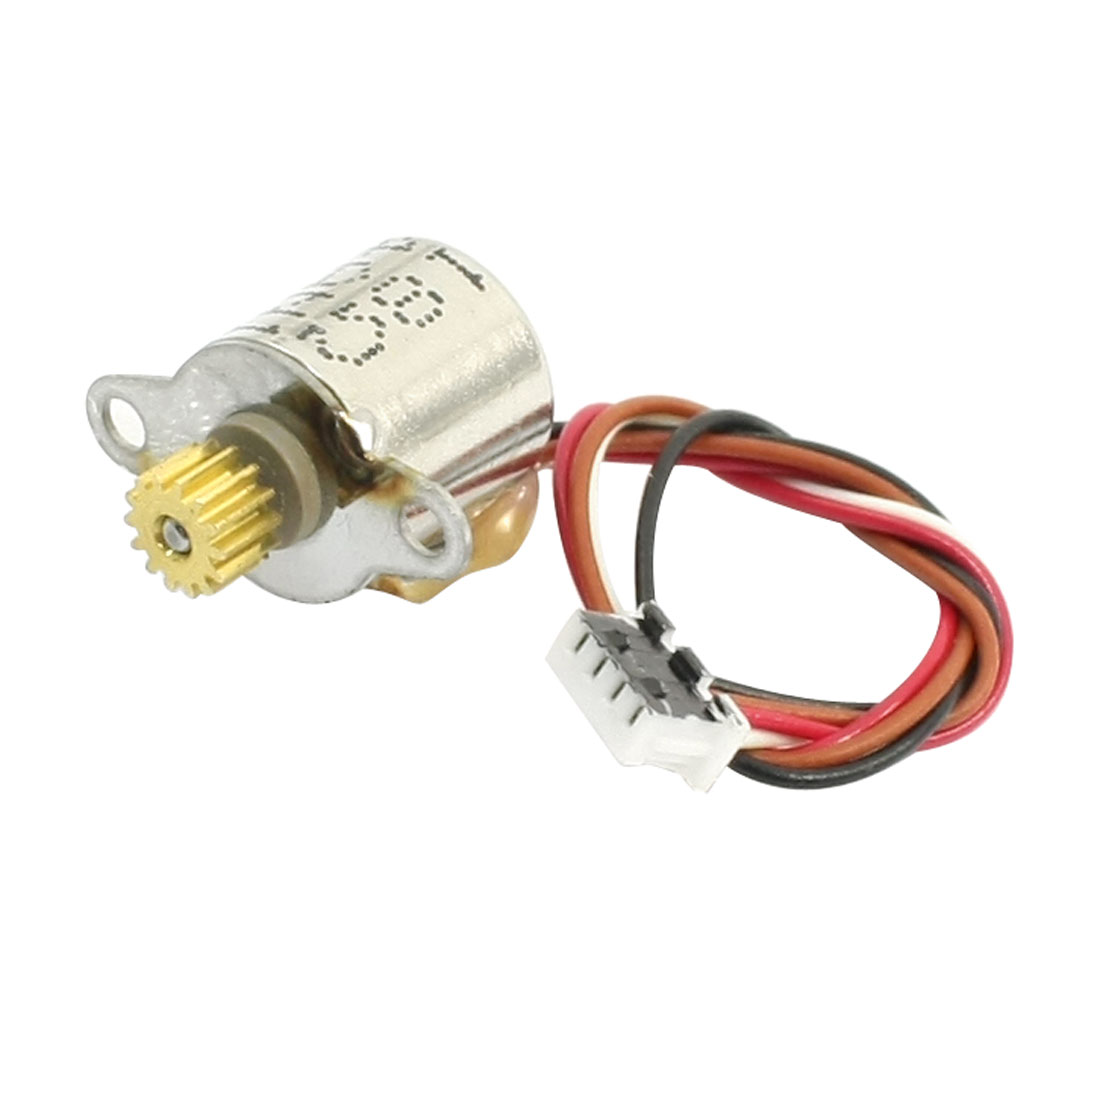 4-Wires-DC-6V-Thread-Shaft-Micro-Gear-Step-Stepper-Motor-Silver-Tone